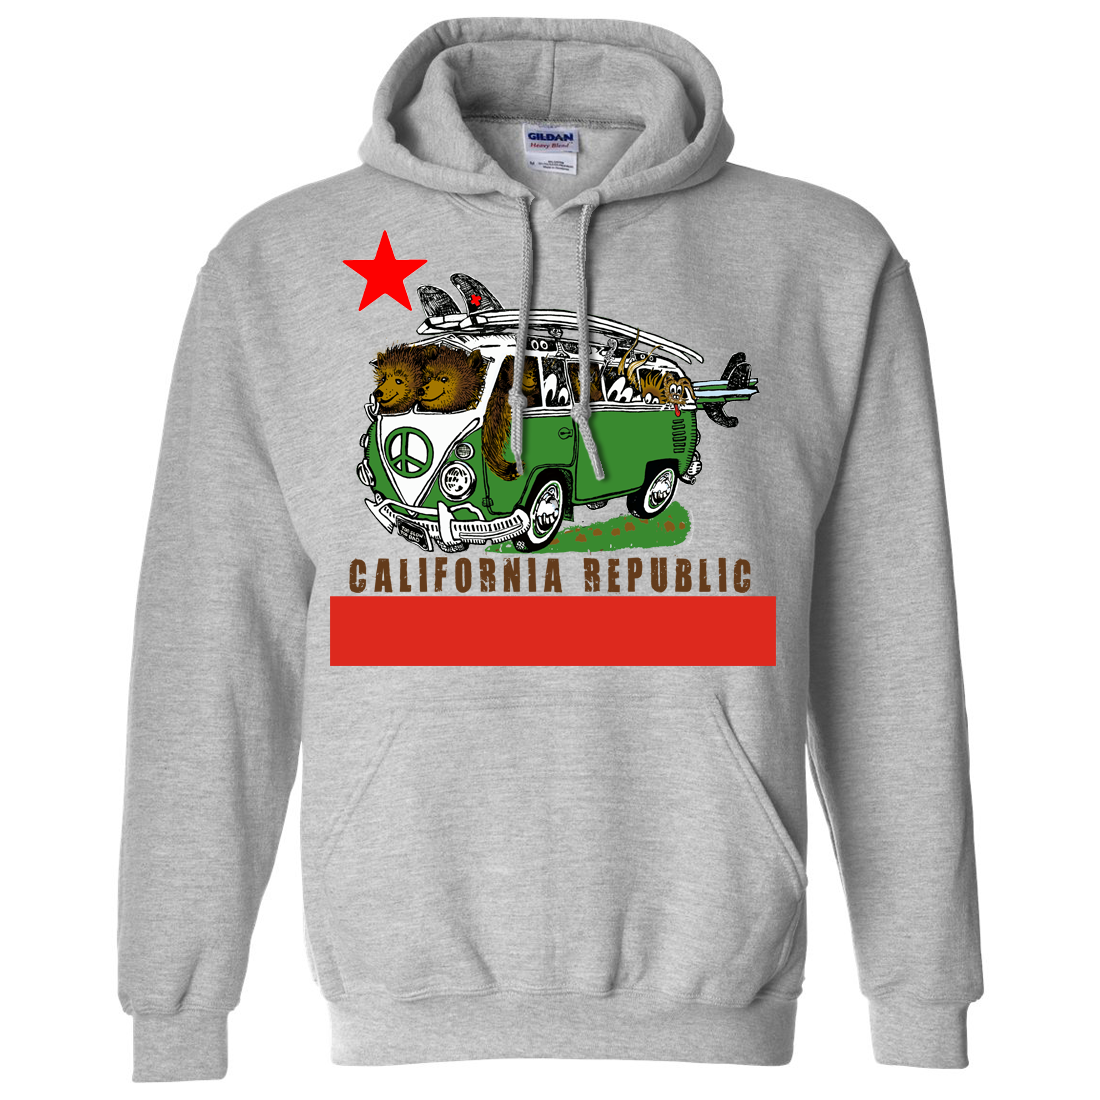 California Republic born raised T-Shirt Comfortable, casual and loose fitting, our heavyweight dark color t-shirt will quickly become one of your favorites. Made from % cotton, it wears well on anyone.